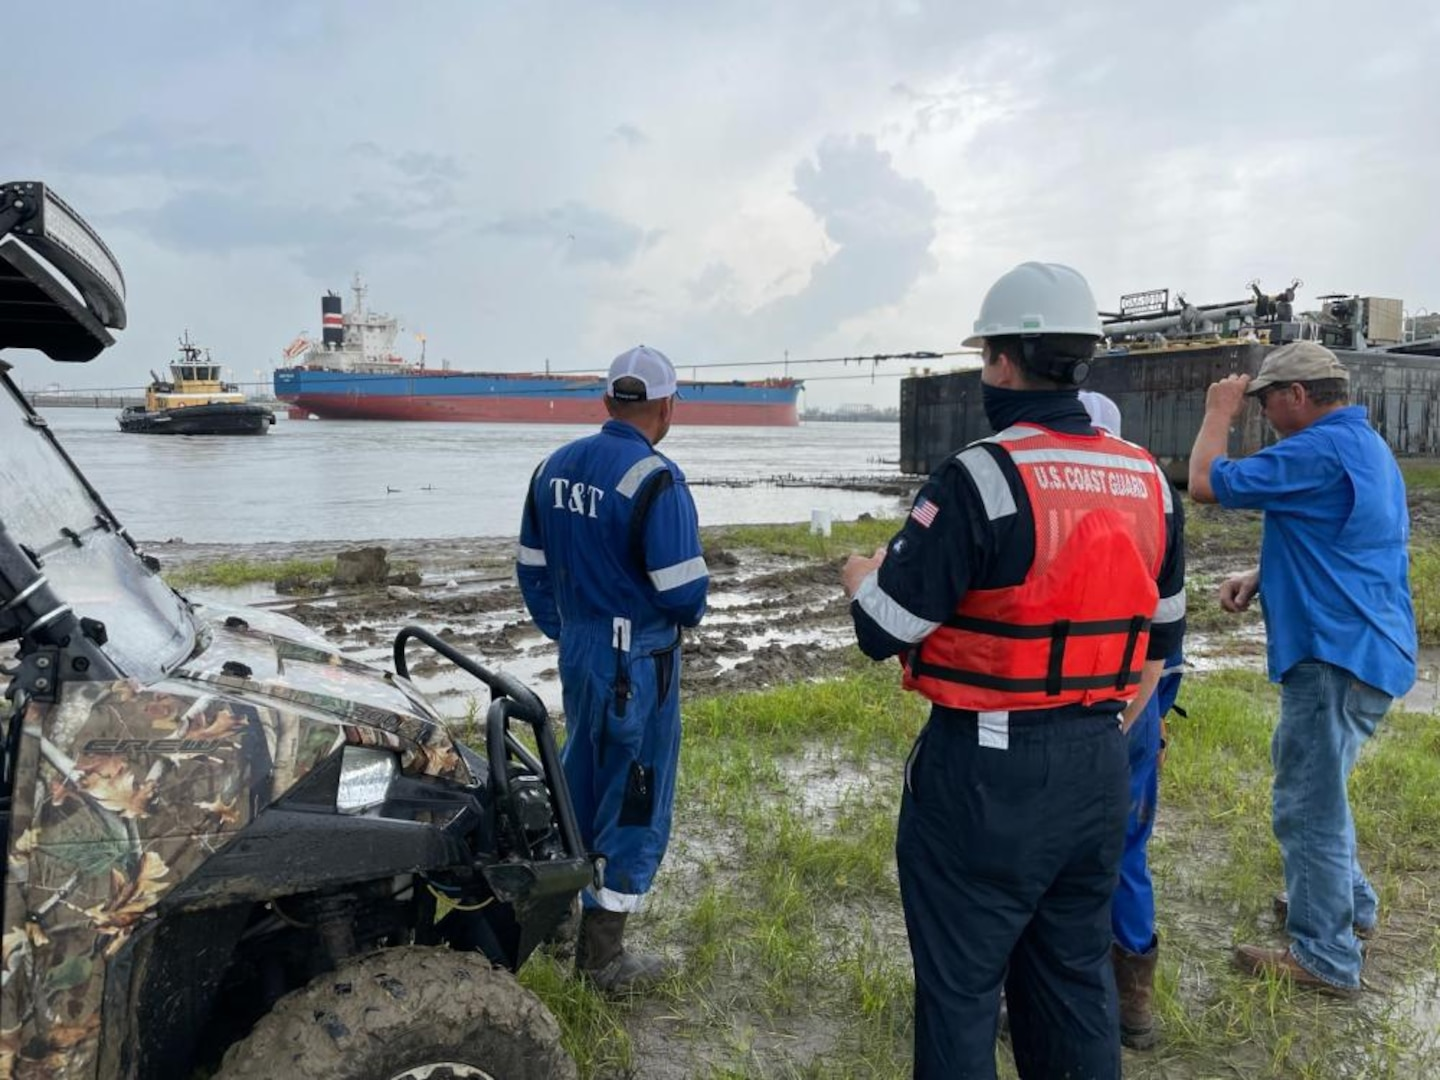 Coast Guard Salvage Engineering Response Team (SERT) provides technical analysis and assistance to salvors attempting to free grounded Genesis Marine barges on the Bonnet Carre Spillway Sept. 6, 2021. The SERT worked alongside the salvage master and representatives from T&T Salvage and Genesis Marine to free the barges. (U.S. Coast Guard photo)